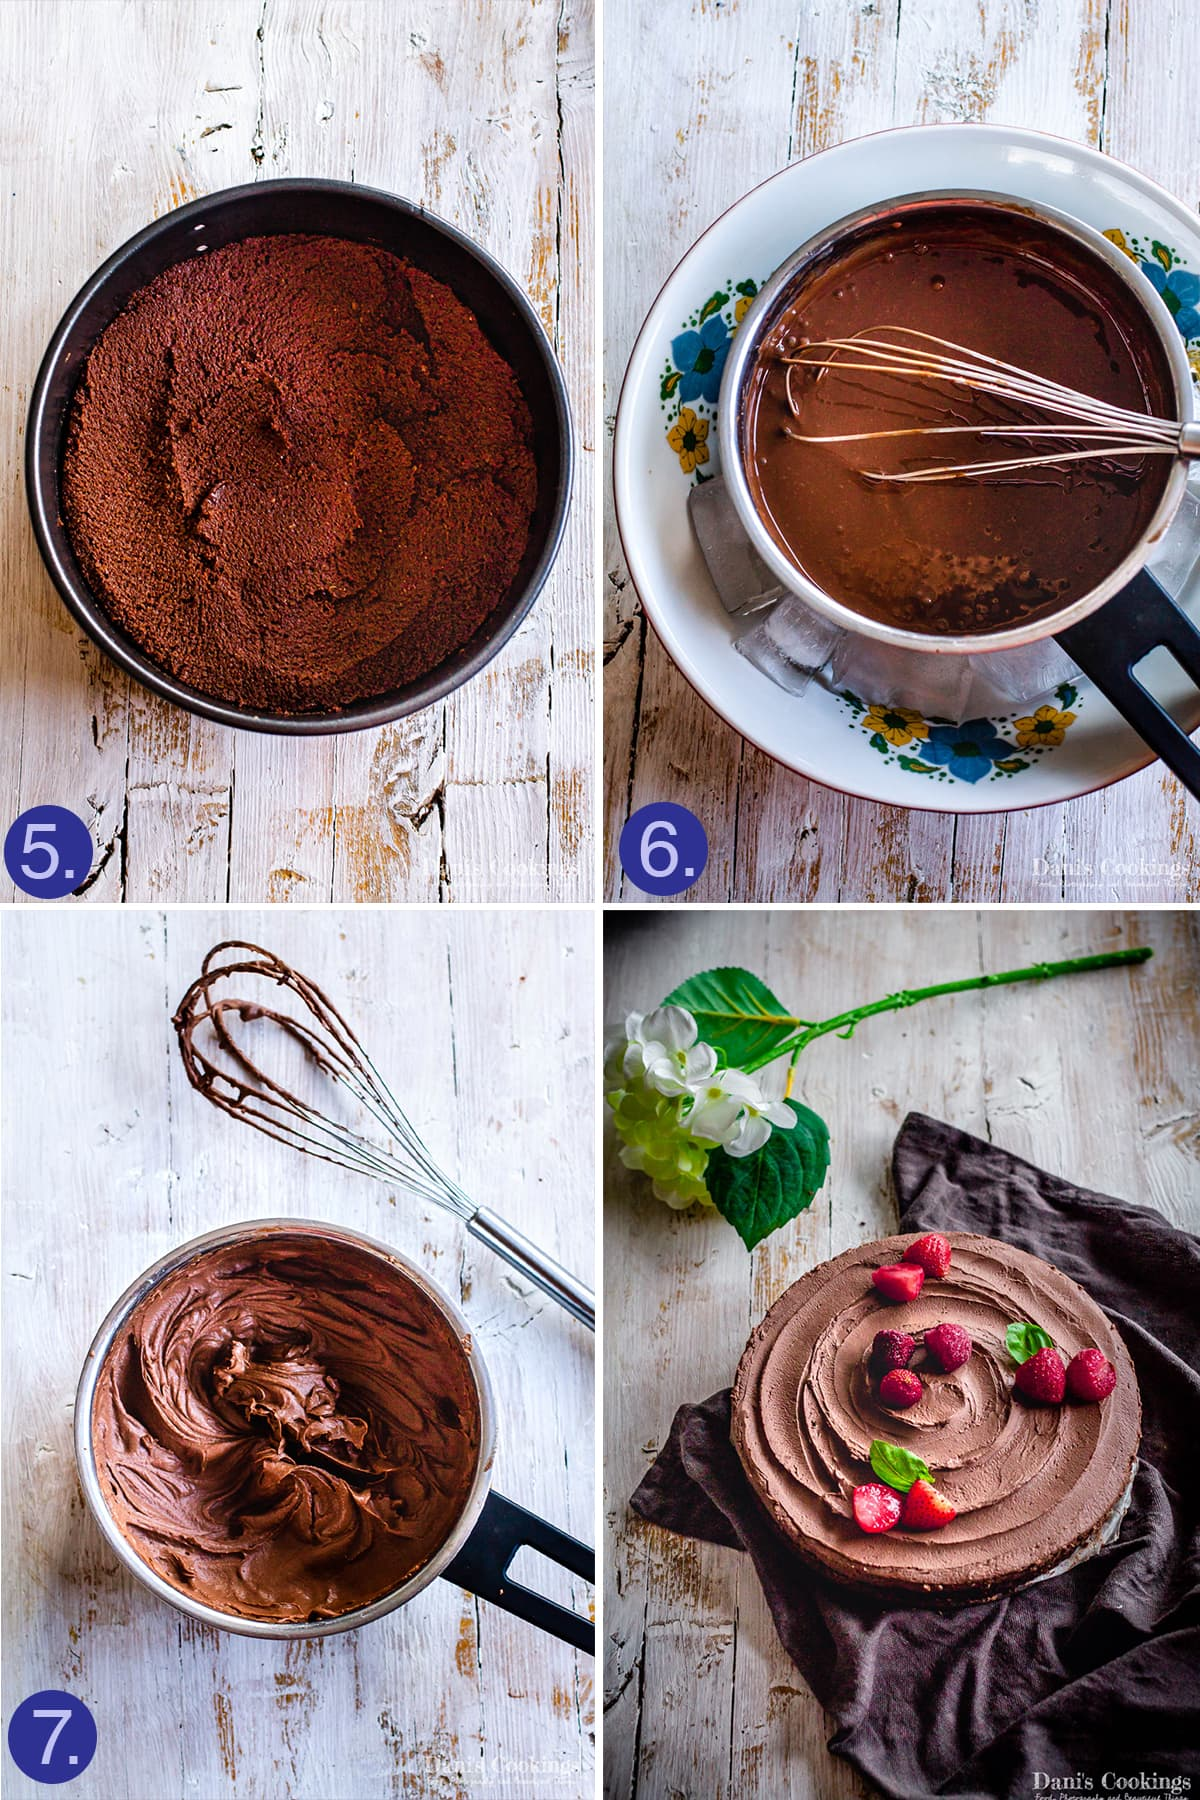 steps to make the mousse of the mousse cake